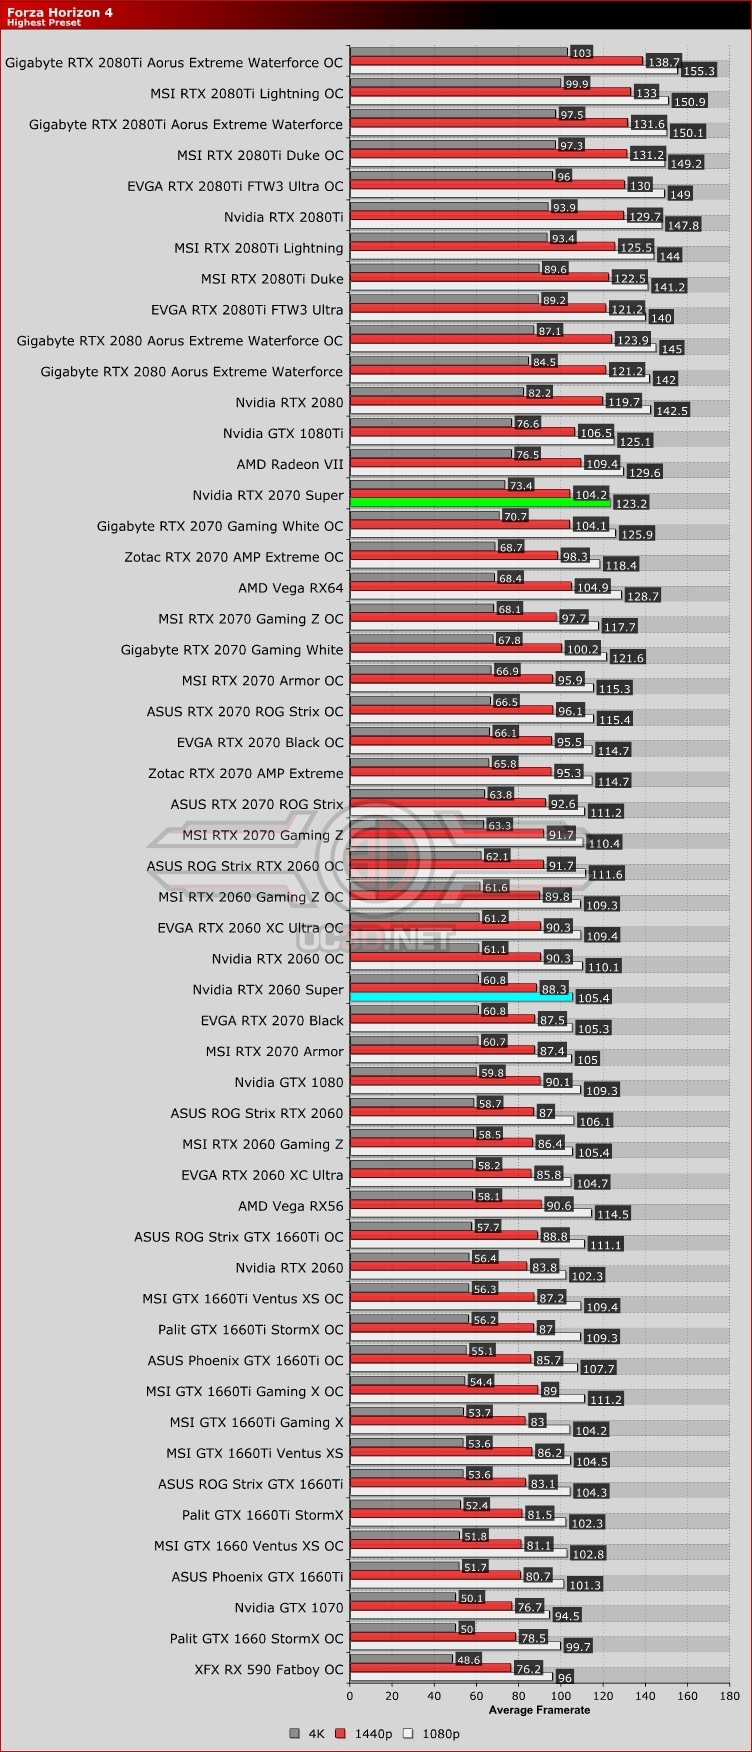 Nvidia RTX 2060 Super and RTX 2070 Super Forza Horizon 4